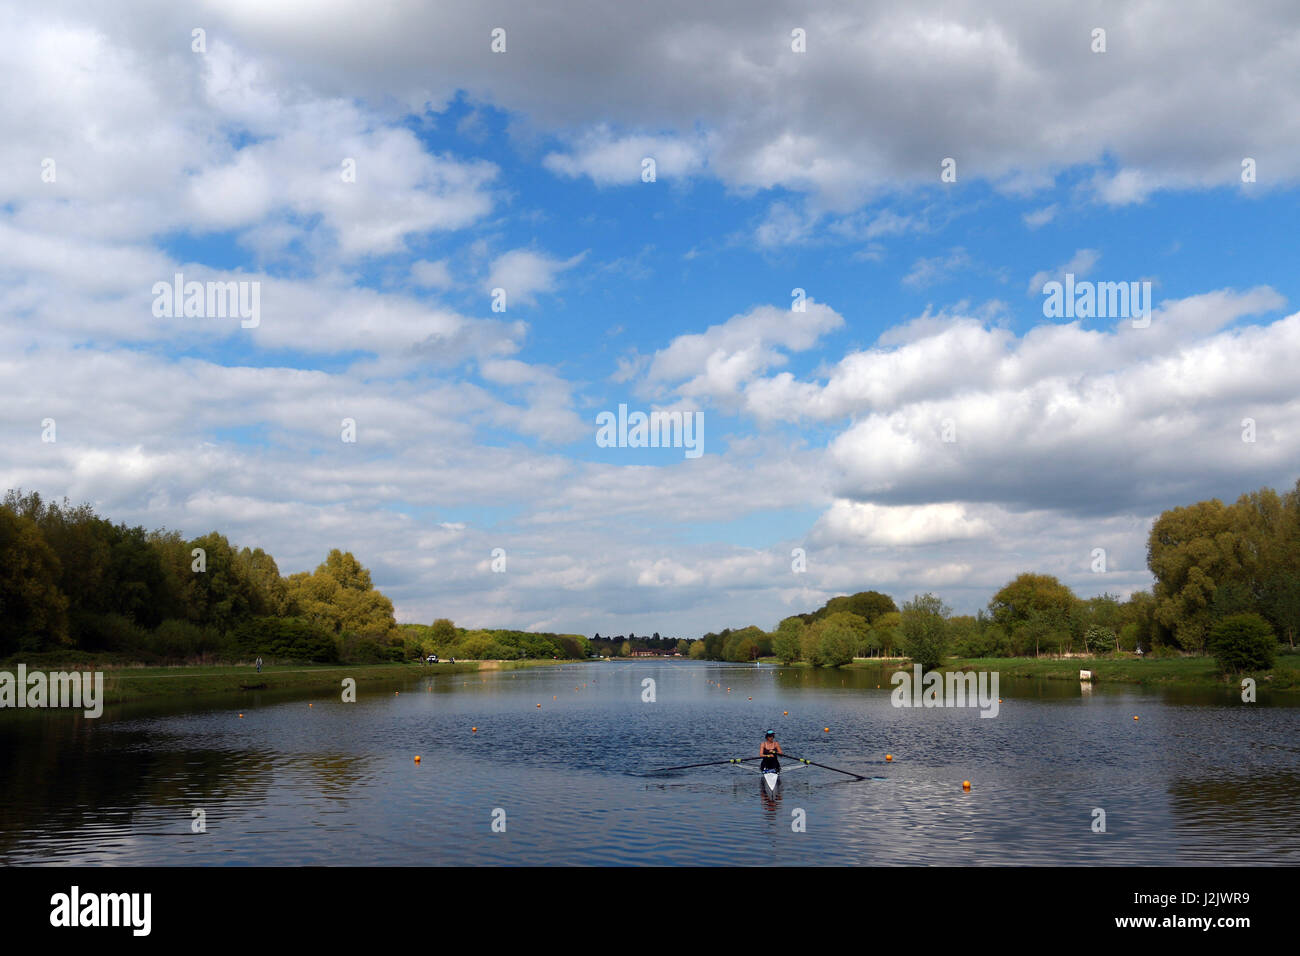 Peterborough, UK. 28th Apr, 2017. UK Weather. Ahead of the Bank Holiday weekend, people are making the most of an - Stock Image